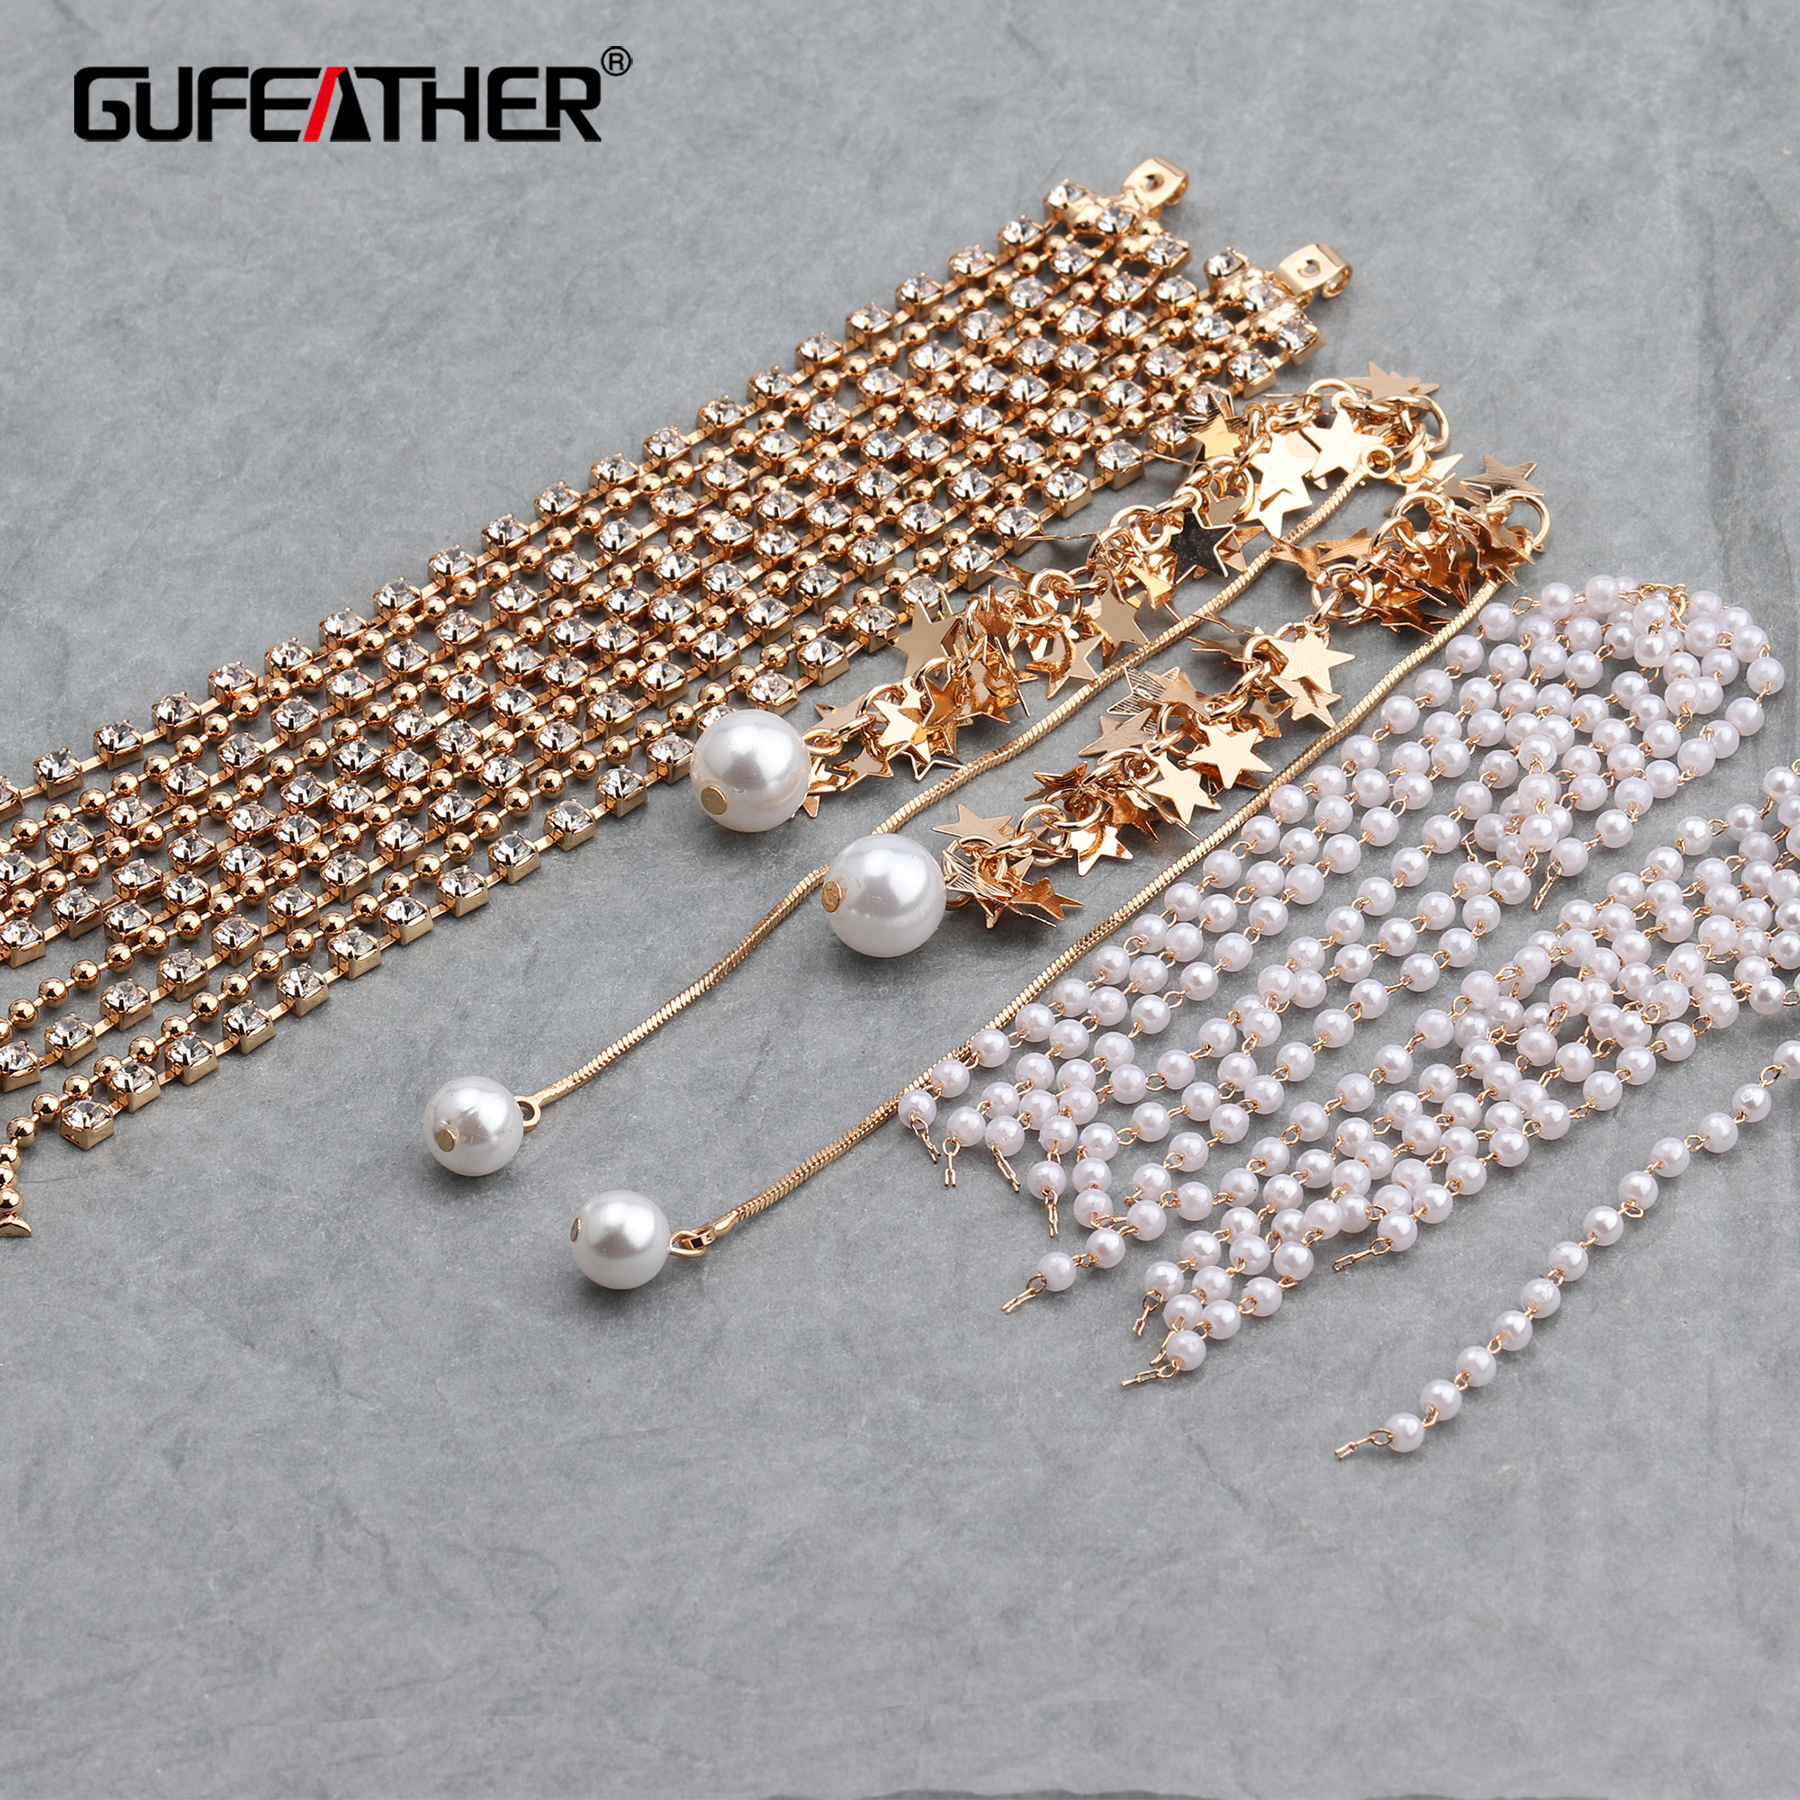 GUFEATHER M606,jewelry Accessories,ear Chain,diy Beads Pendant,hand Made,jump Ring,diy Earrings,jewelry Making,10pcs/lot